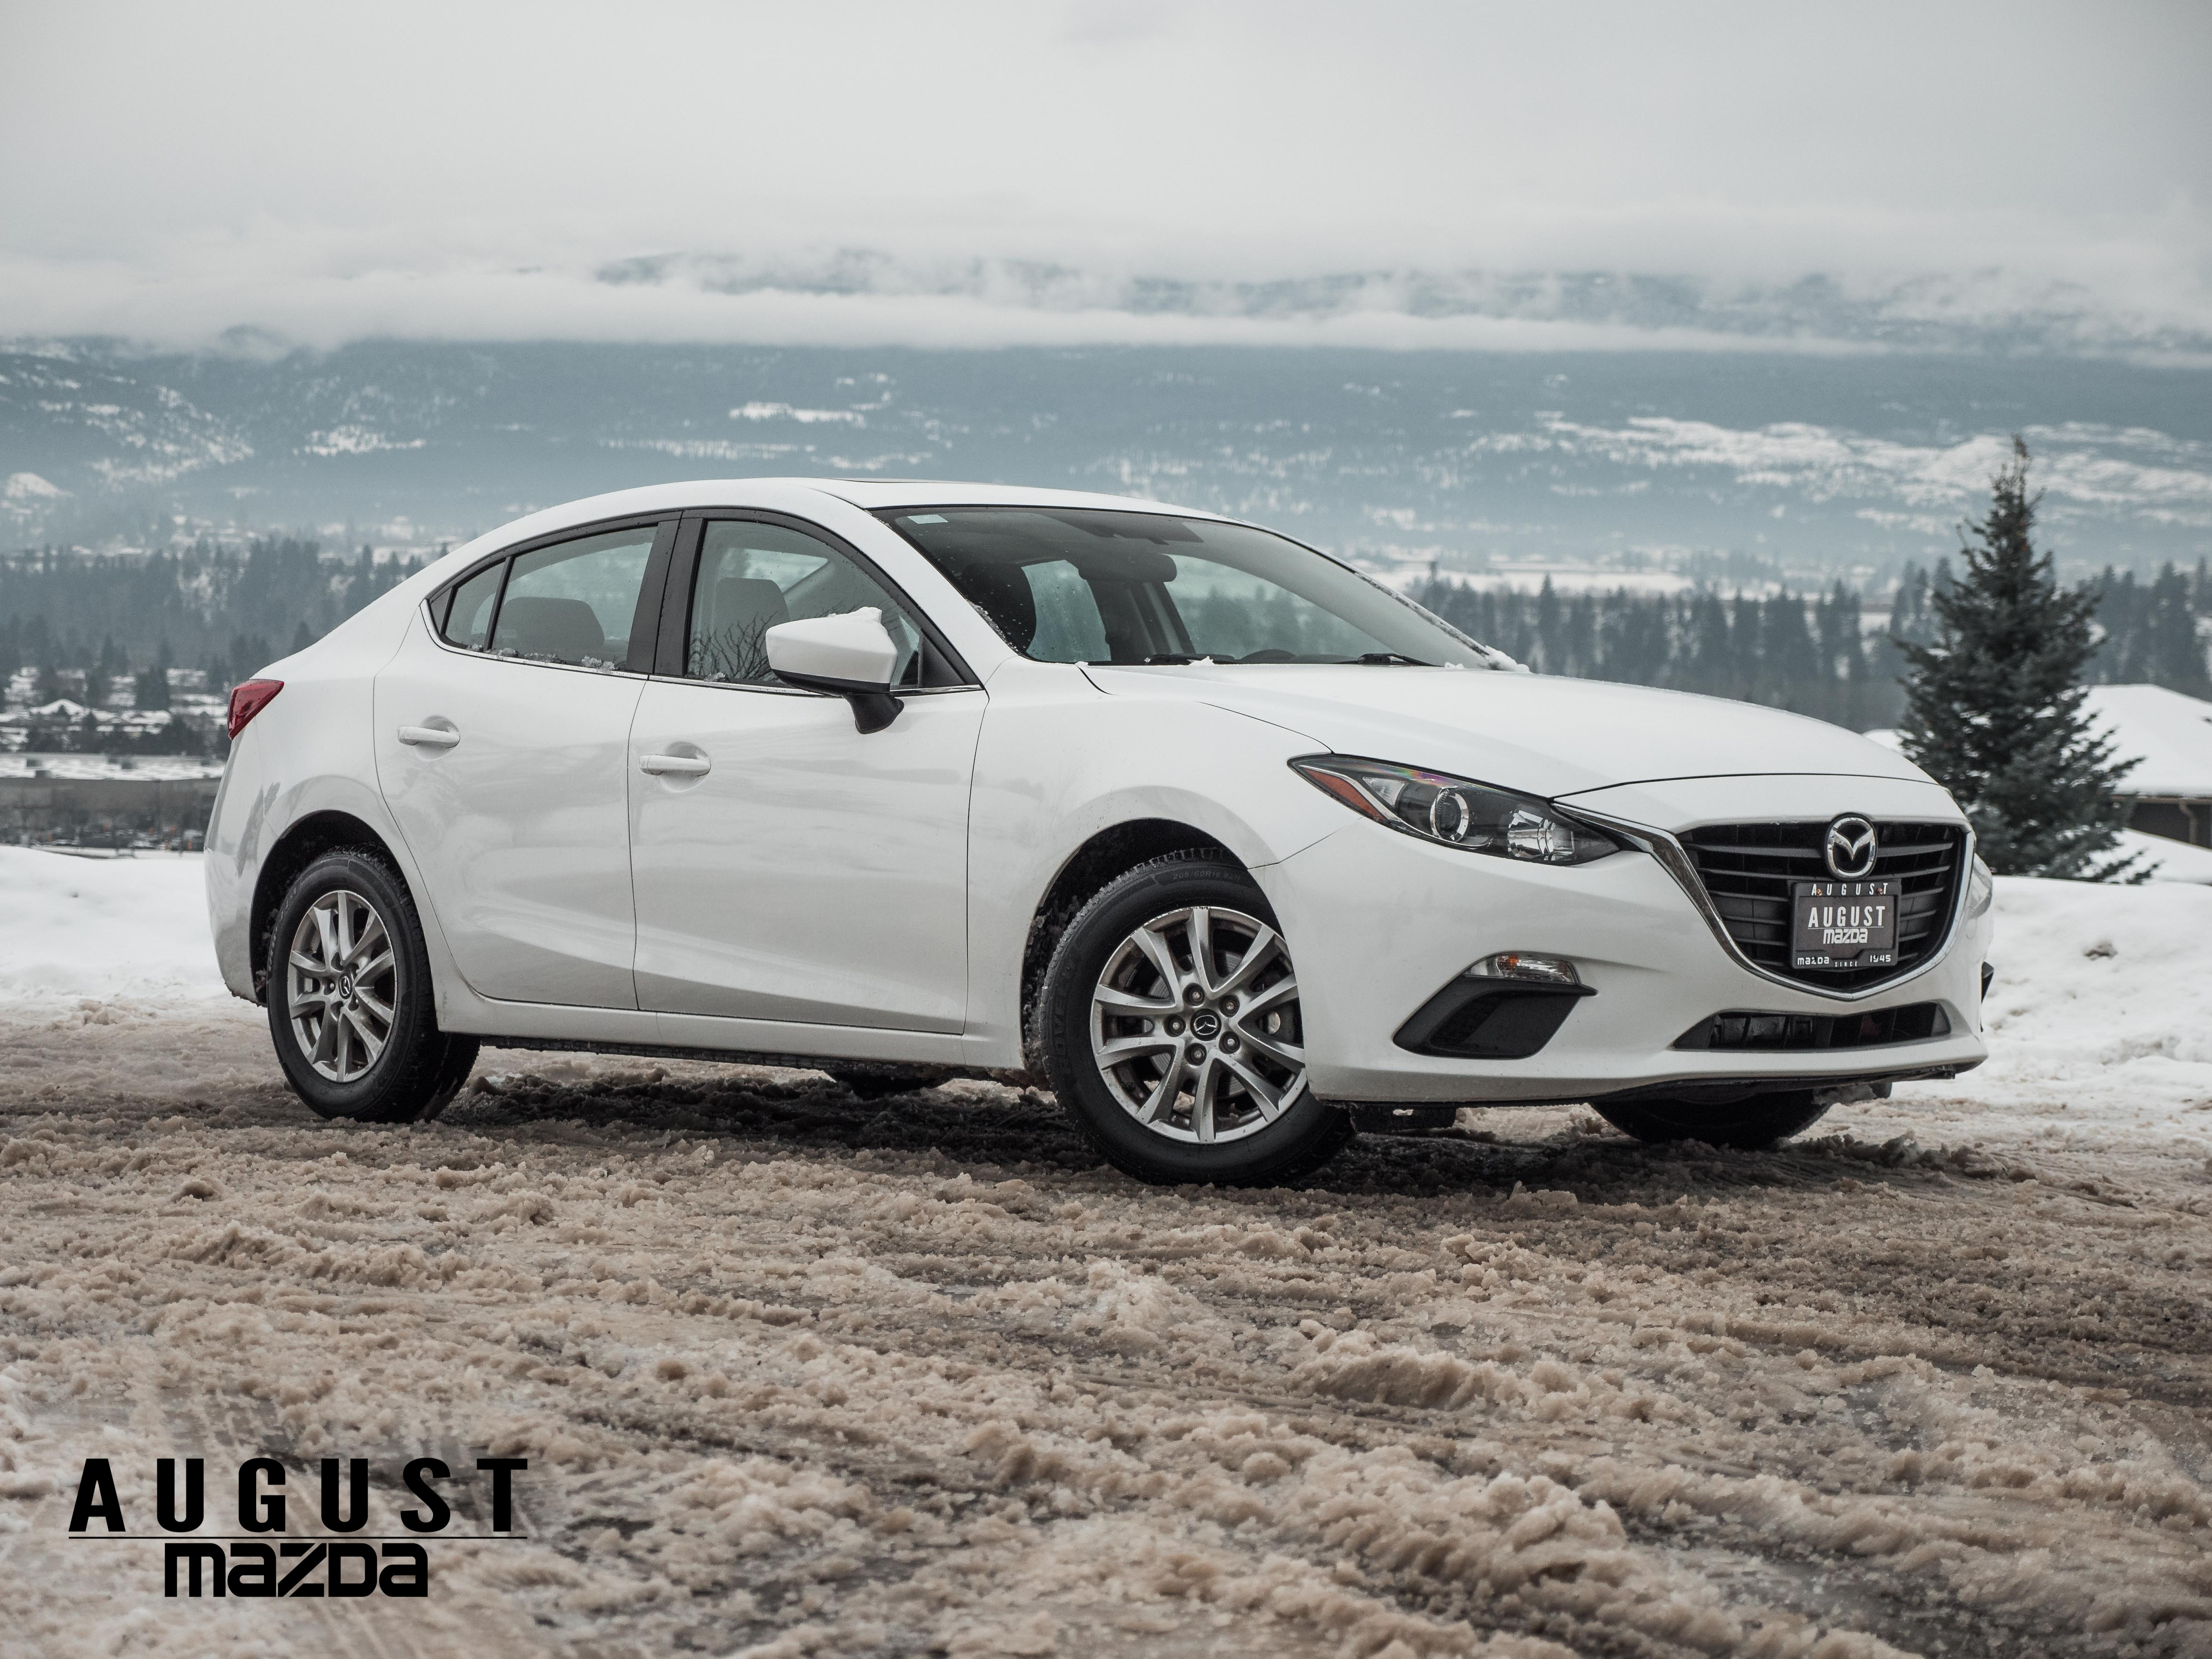 Pre-Owned 2015 Mazda 3 GS